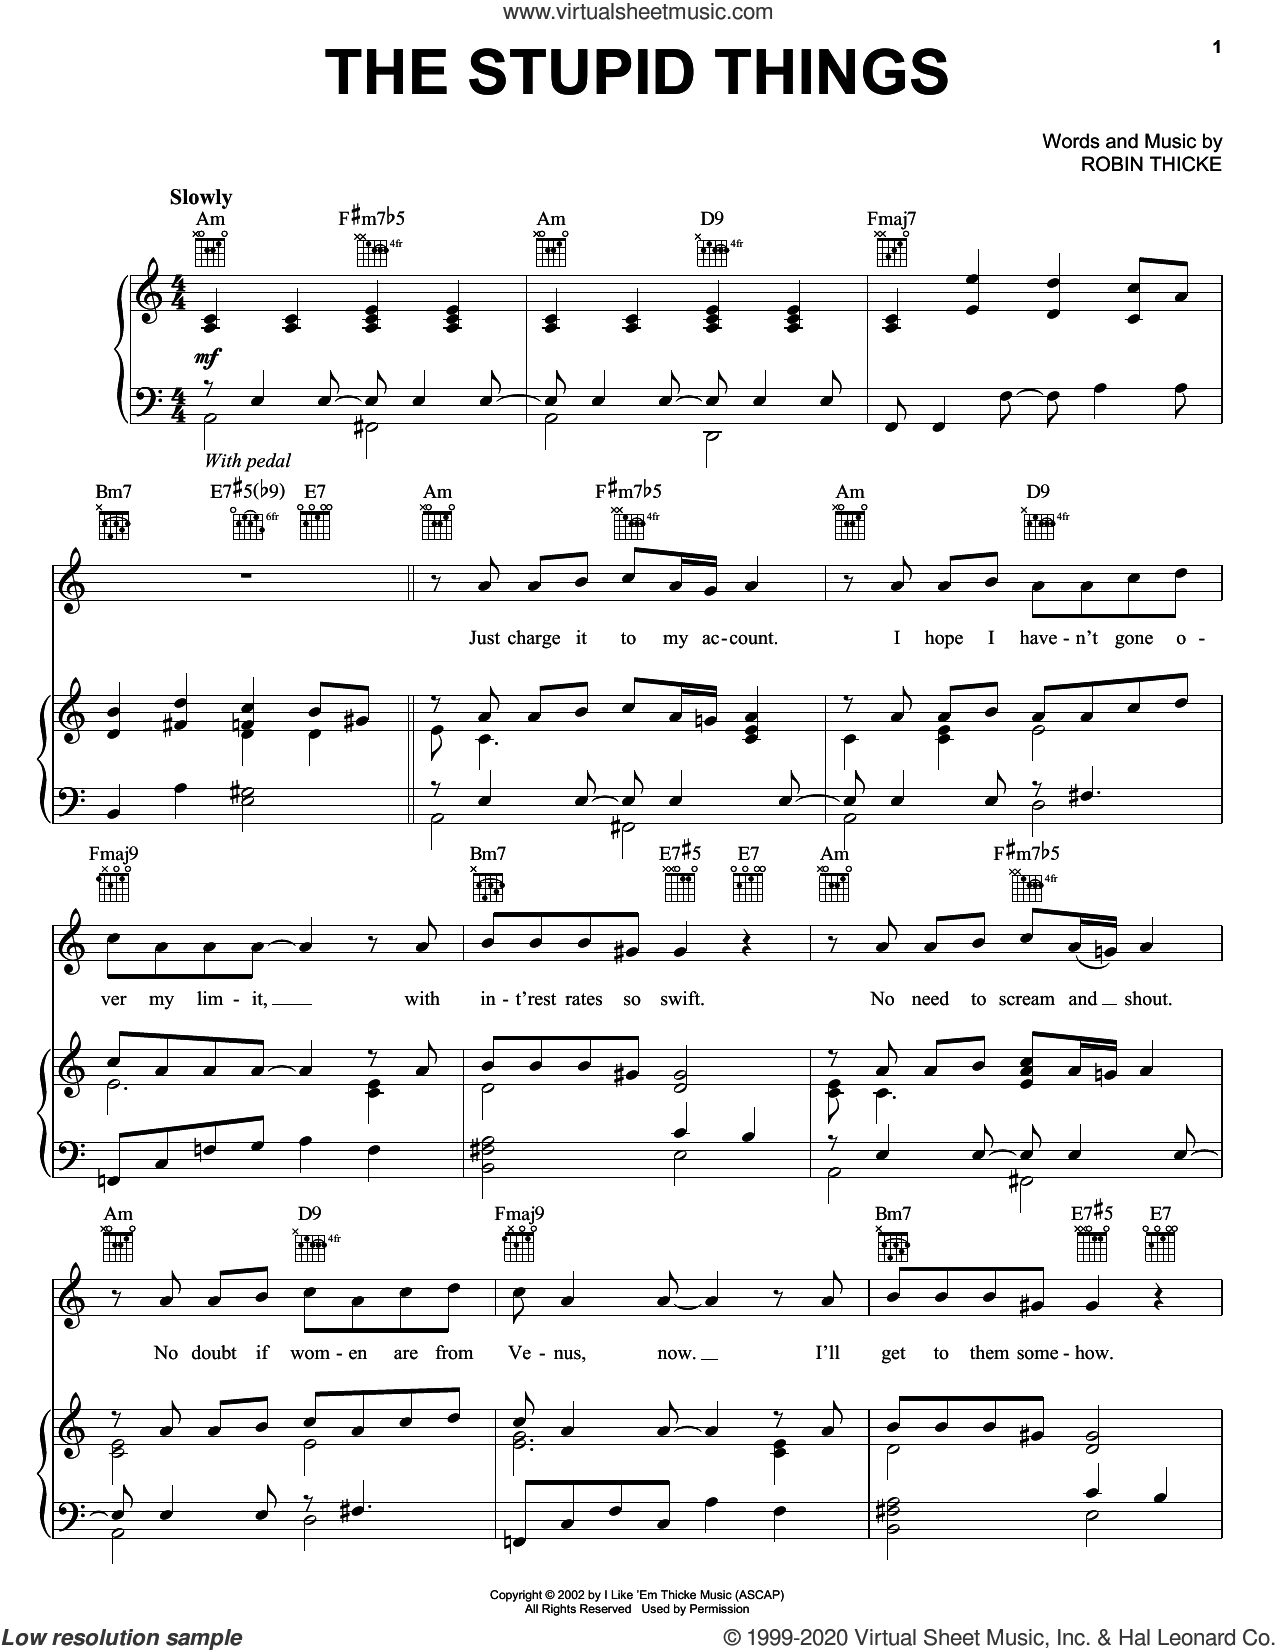 The Stupid Things sheet music for voice, piano or guitar by Jesse McCartney and Robin Thicke, intermediate skill level